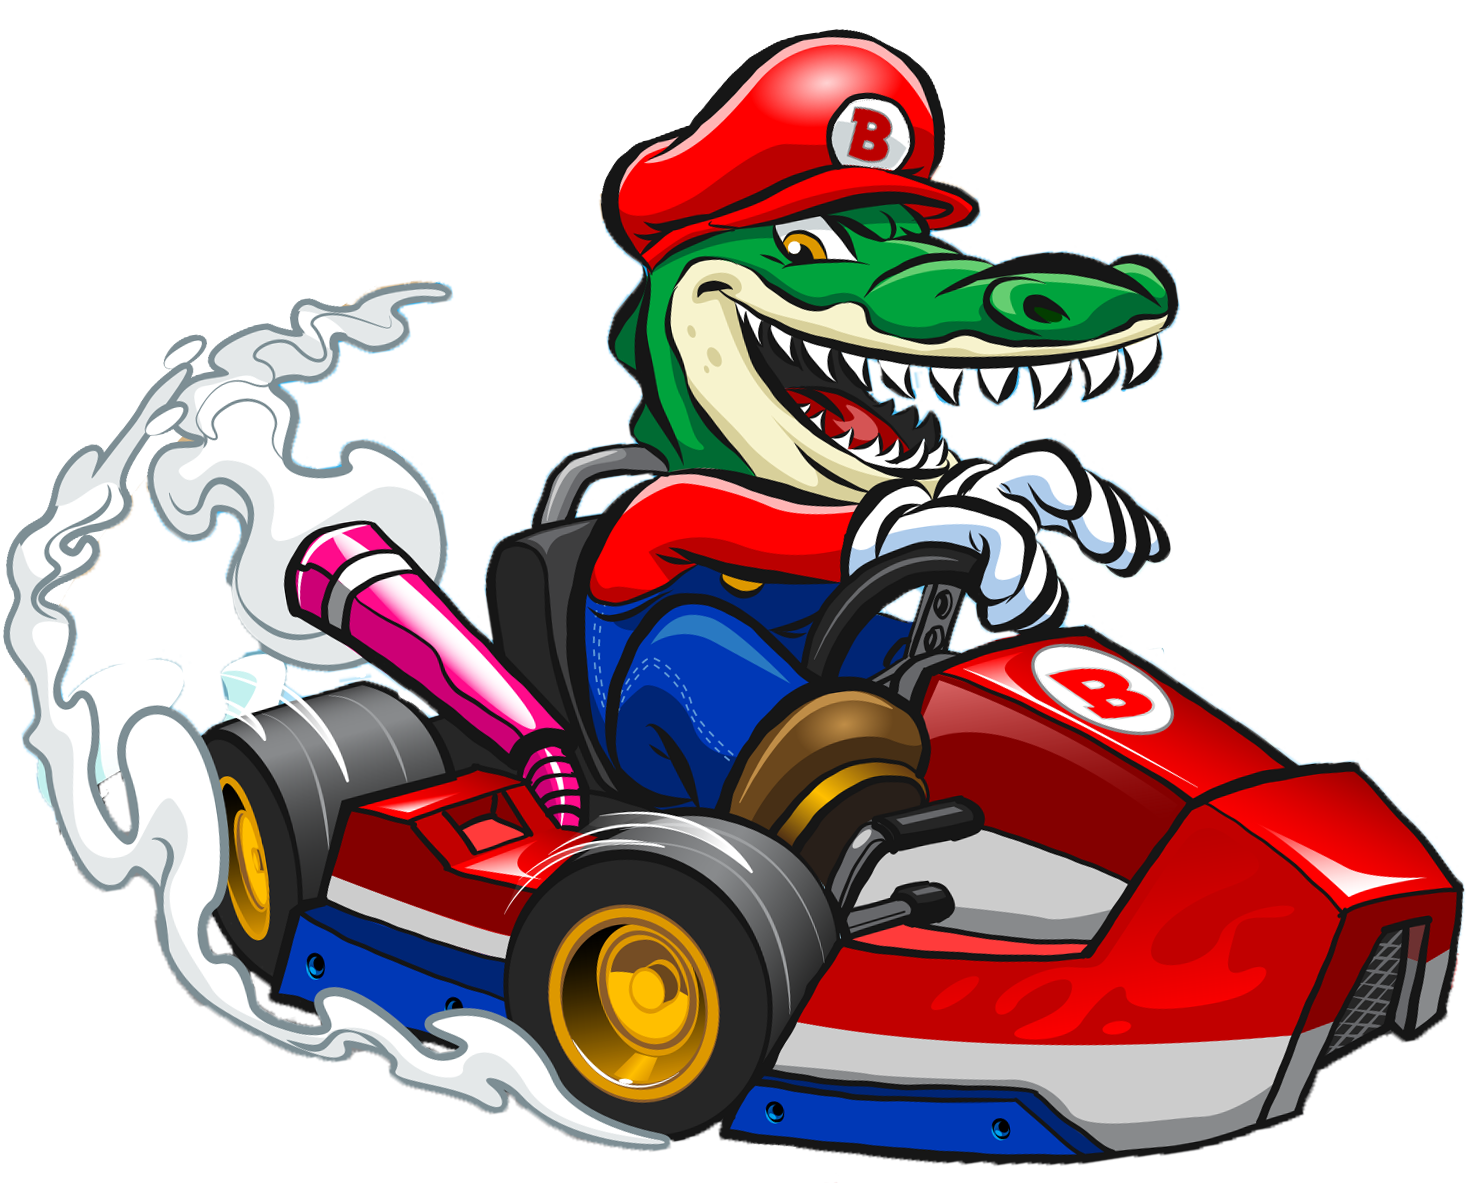 Al Gator the Florida gator racing on an electric go kart.